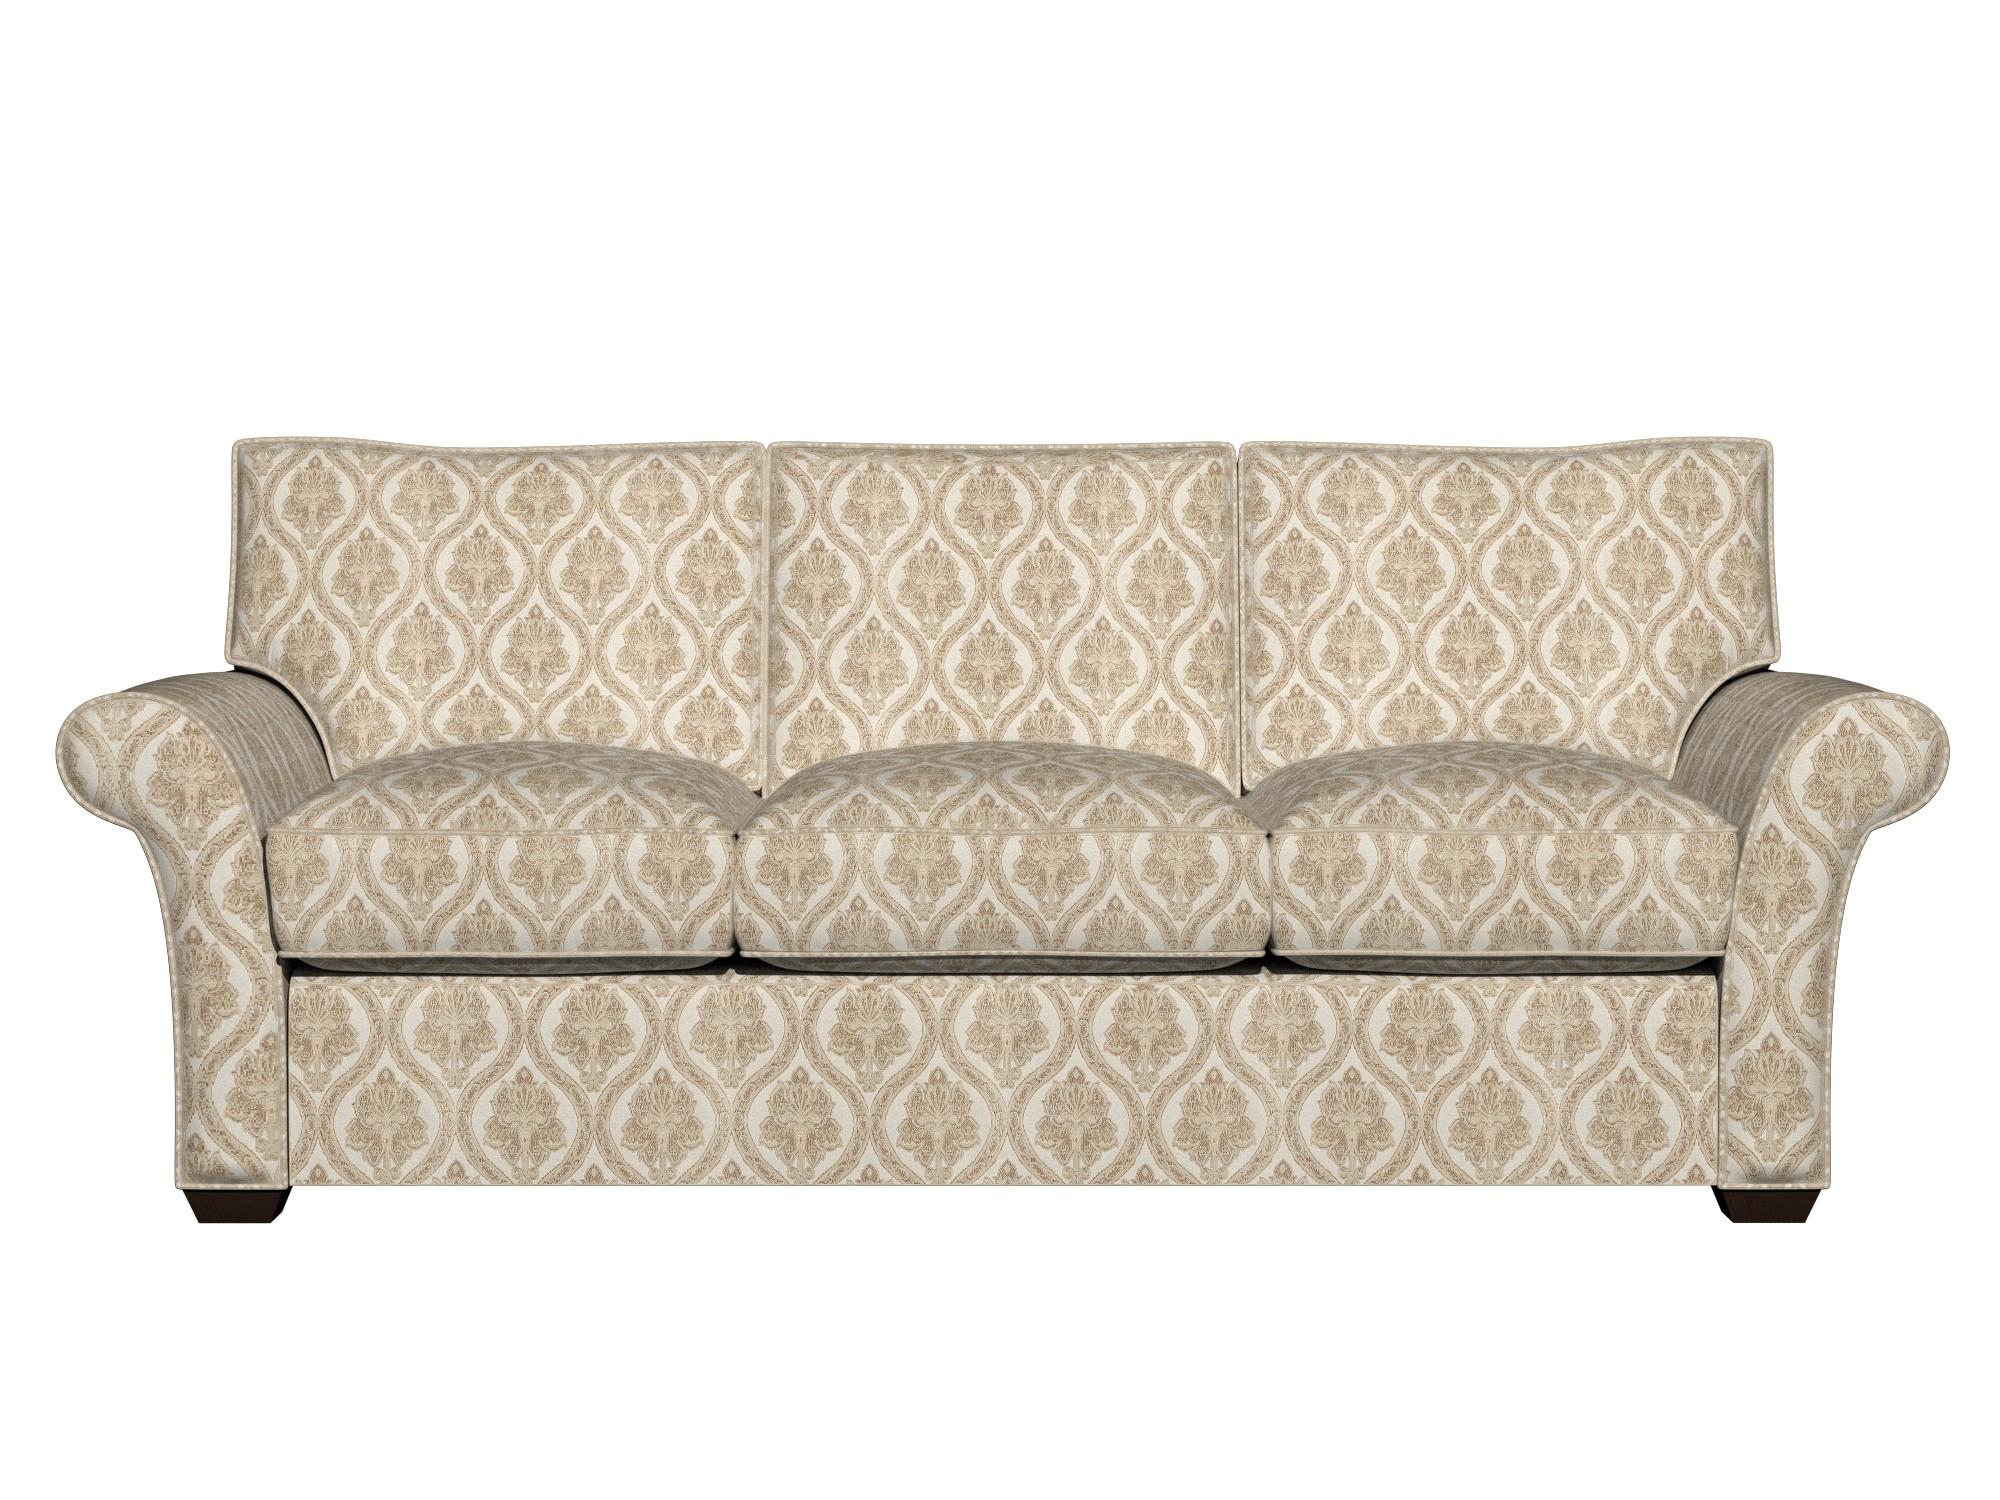 brocade sofa fabric sofas cover ivory traditional upholstery by the yard